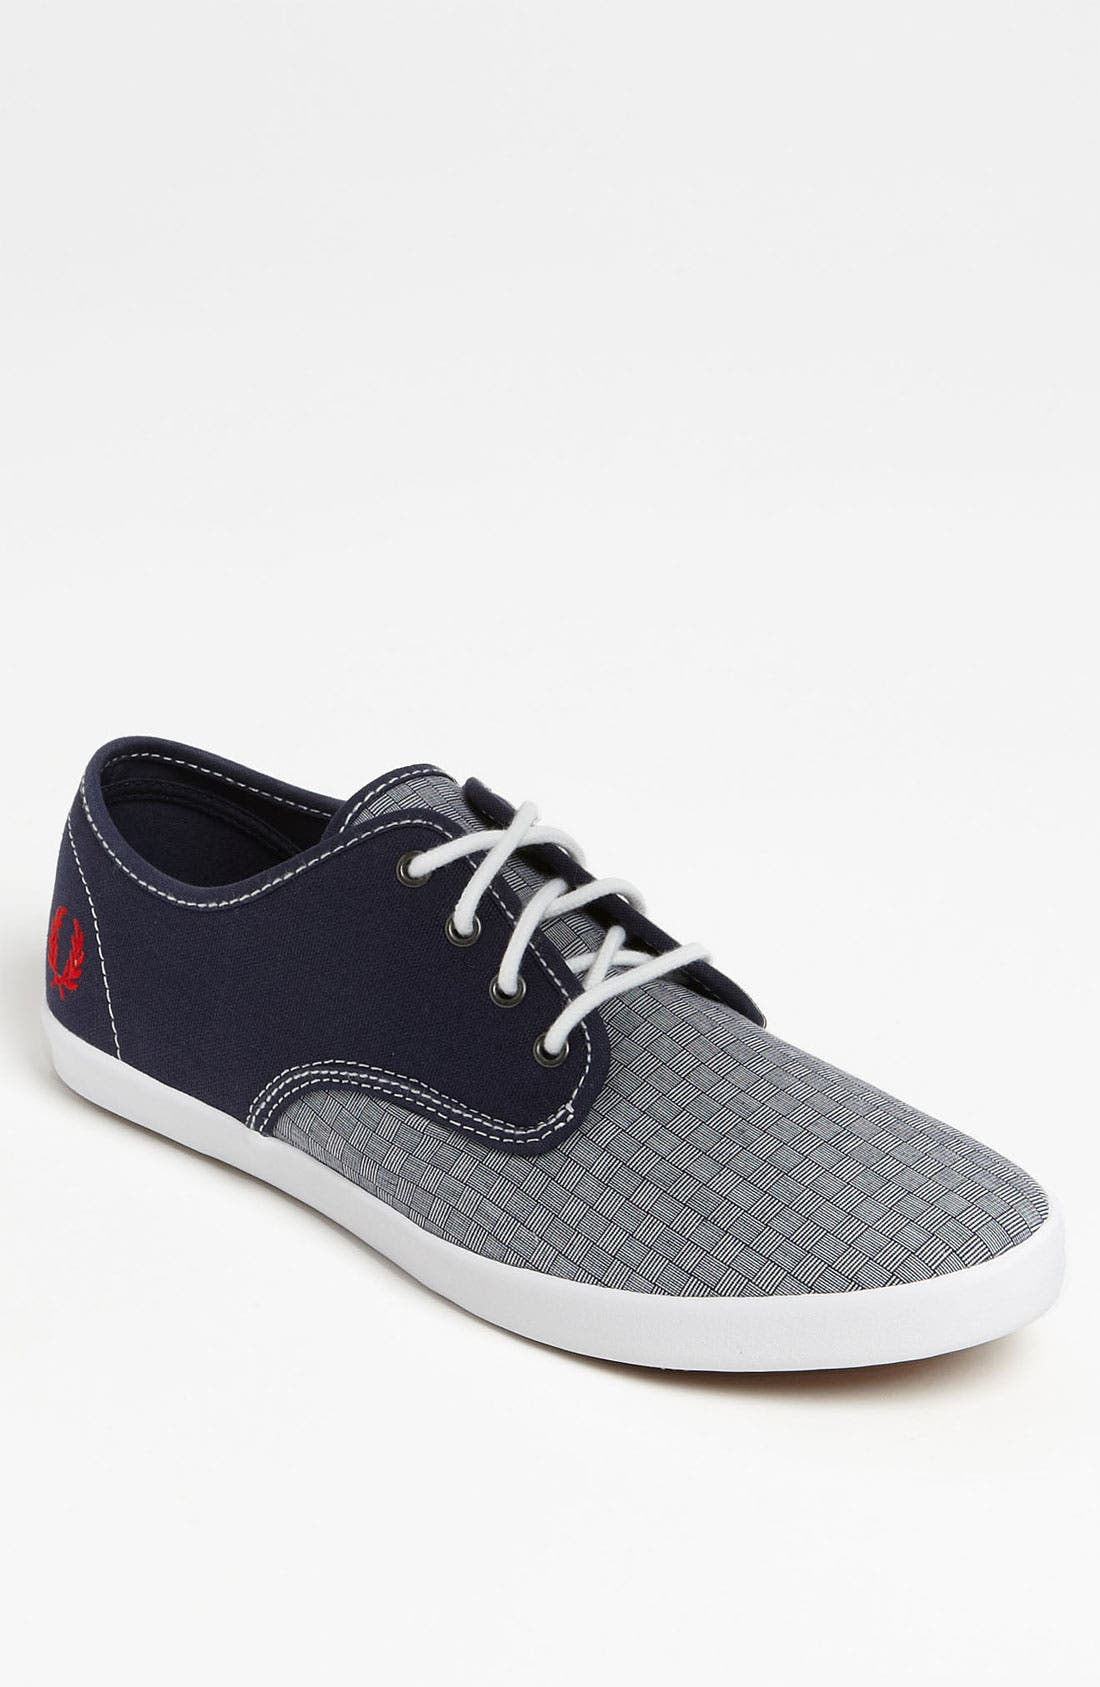 Main Image - Fred Perry 'Foxx' Sneaker